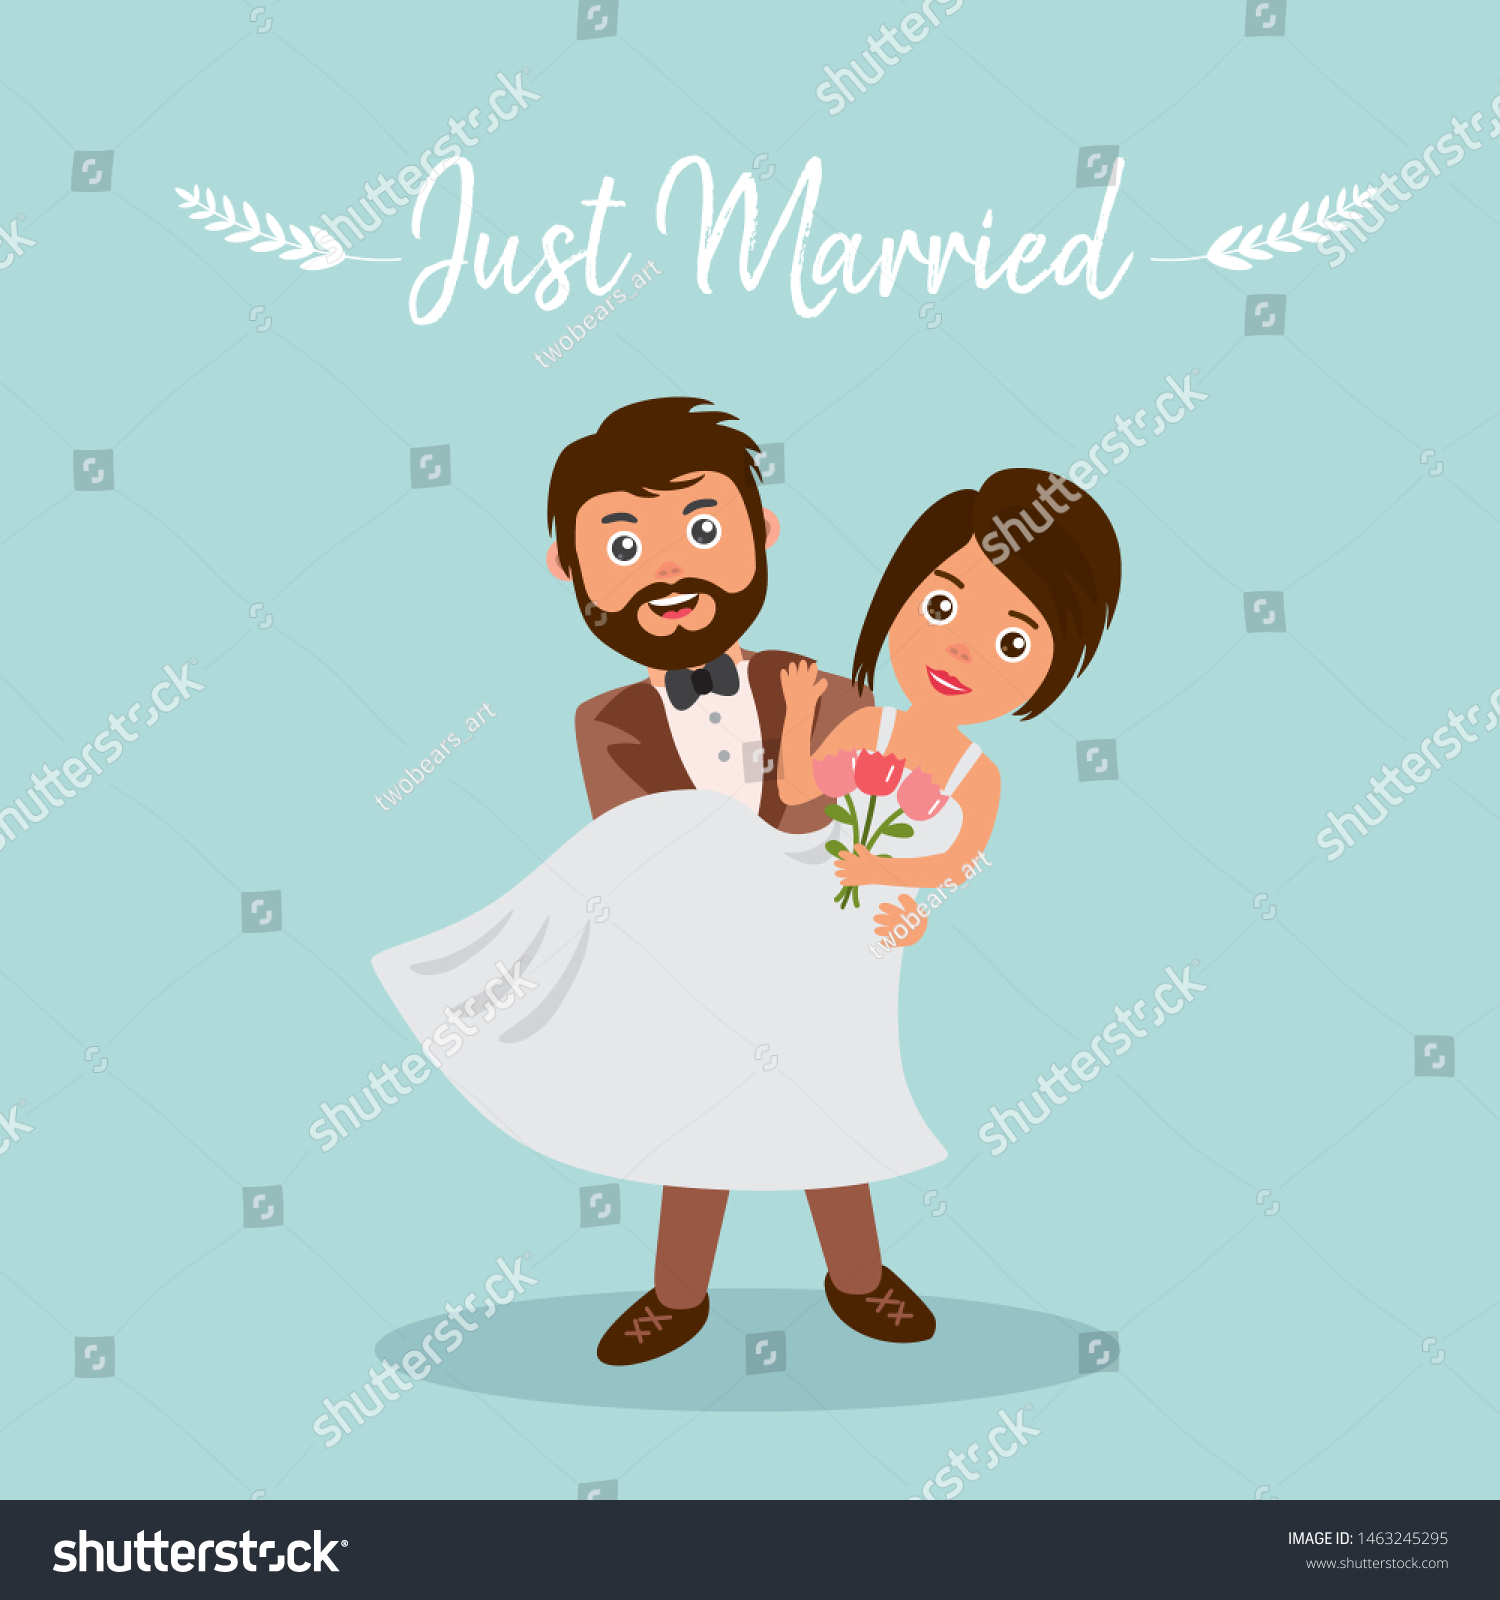 Happy Wedding Couple Bride Groom Just Stock Vector Royalty Free 1463245295